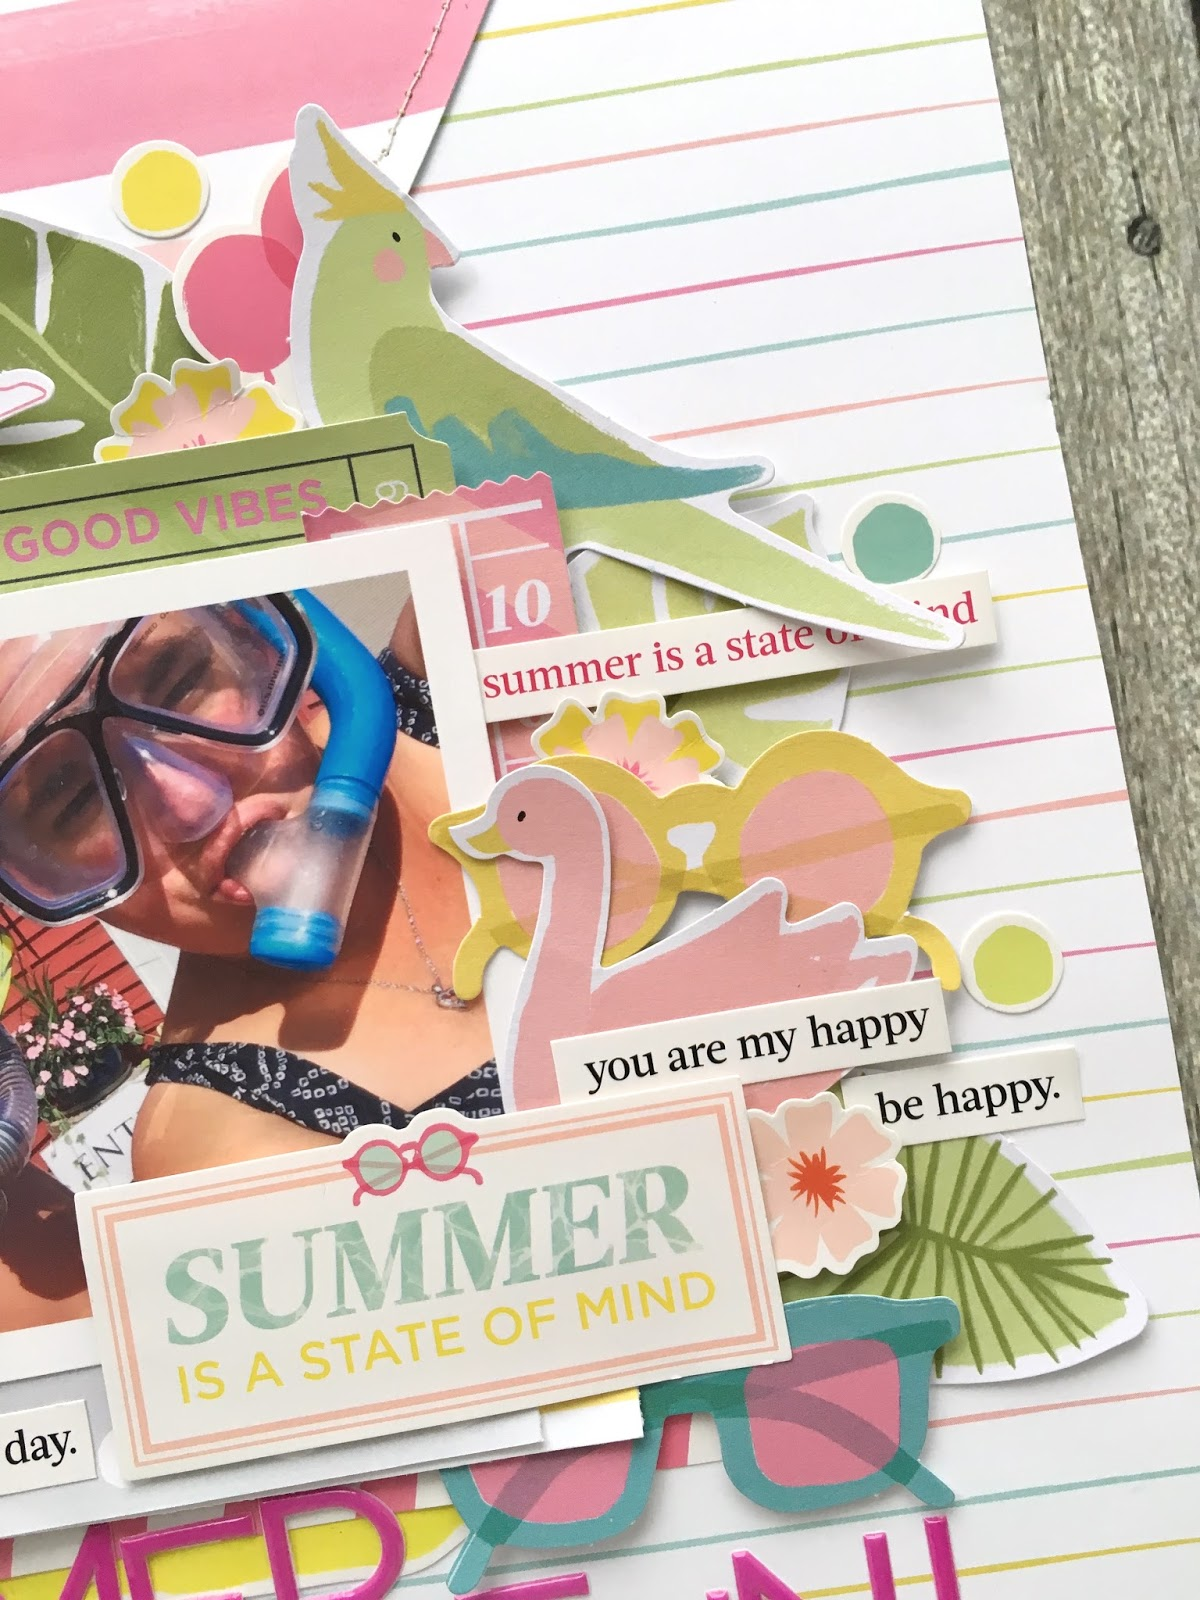 summer fun essays The summer starts in india from the beginning of march and continues up to short essay on summer season essay on 4 seasons in india: summer.